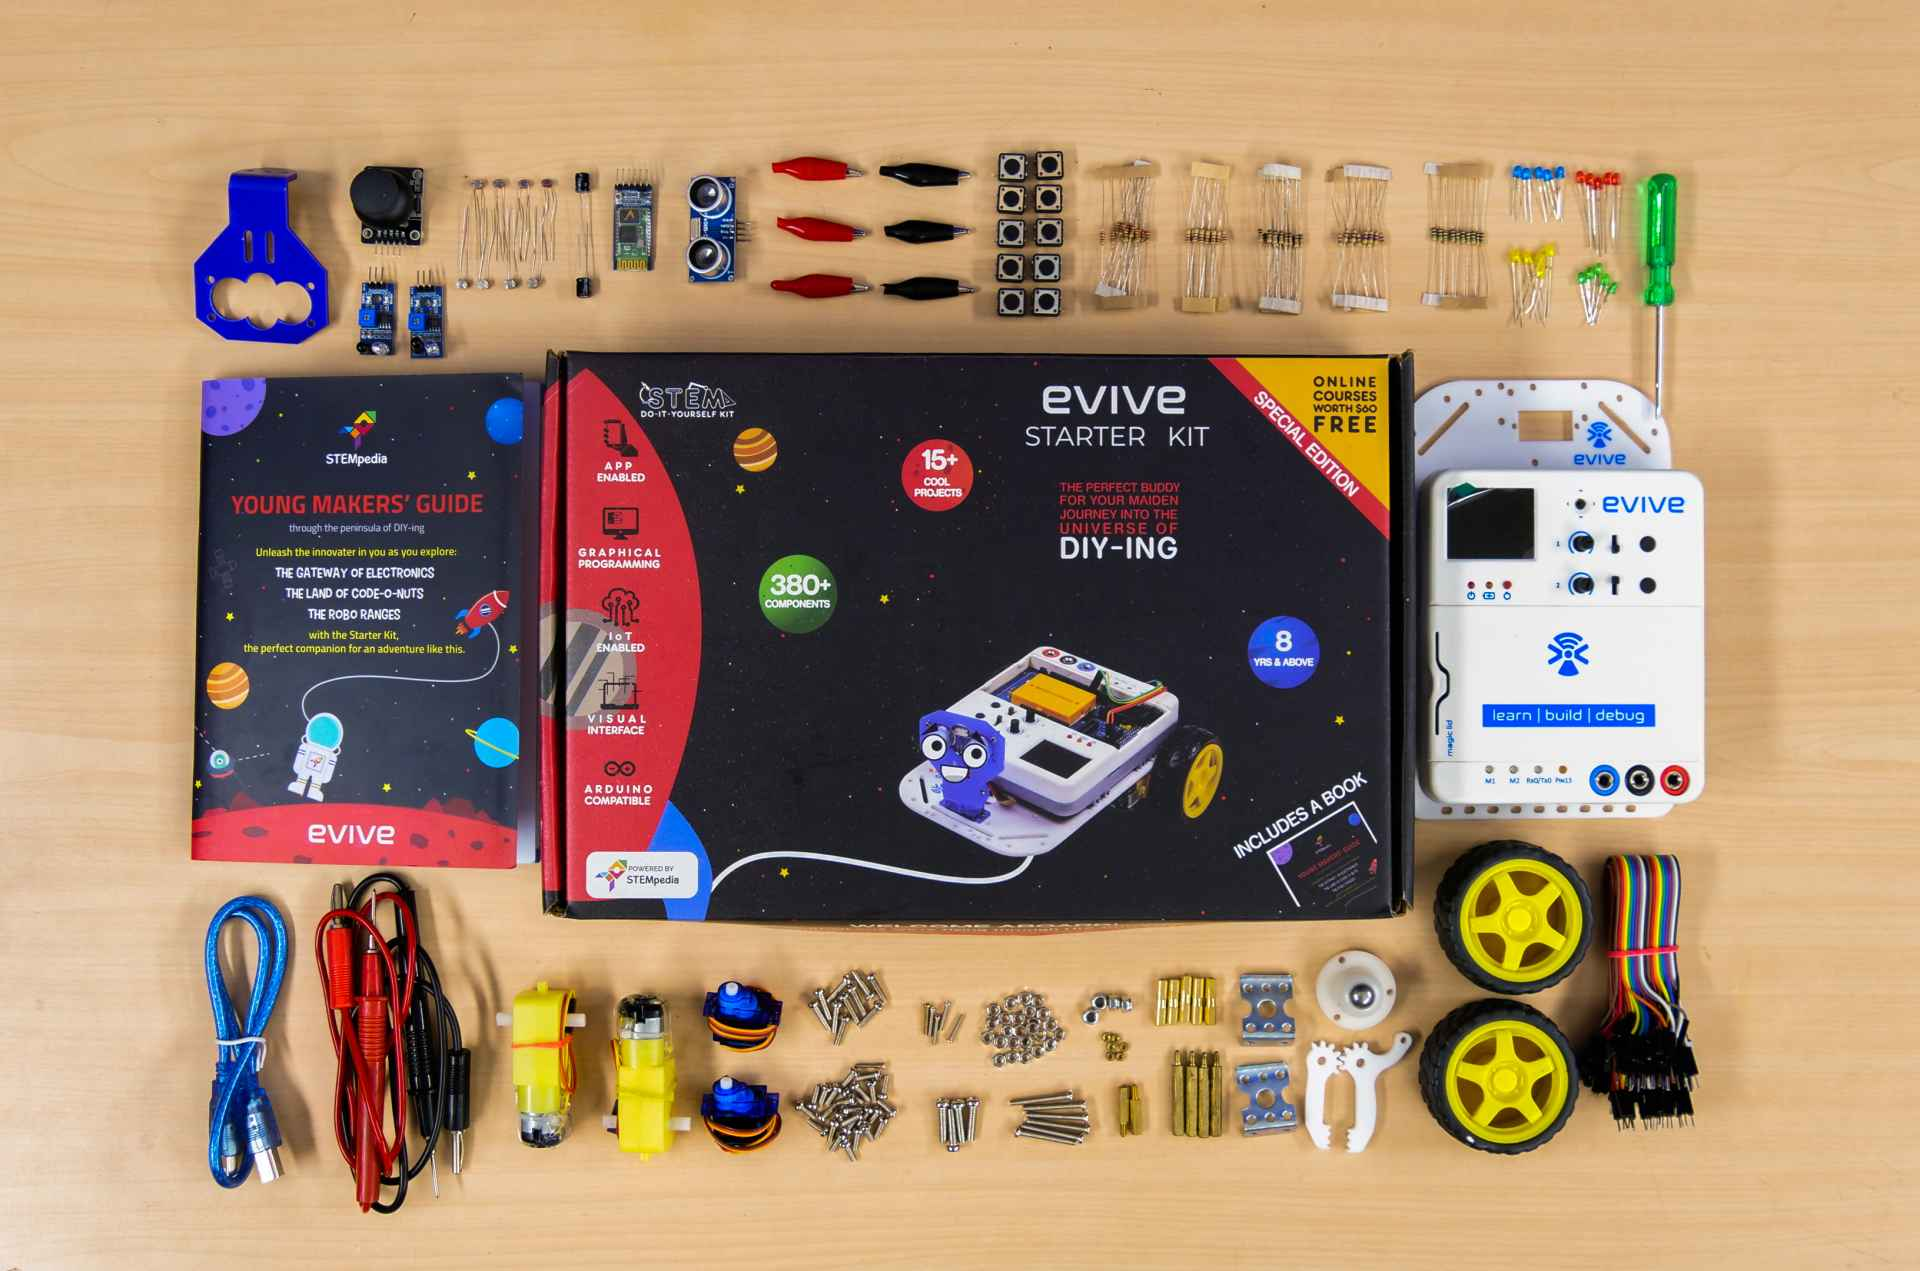 Awesome Back-To-School Kits For Teachers To Turn Their Class